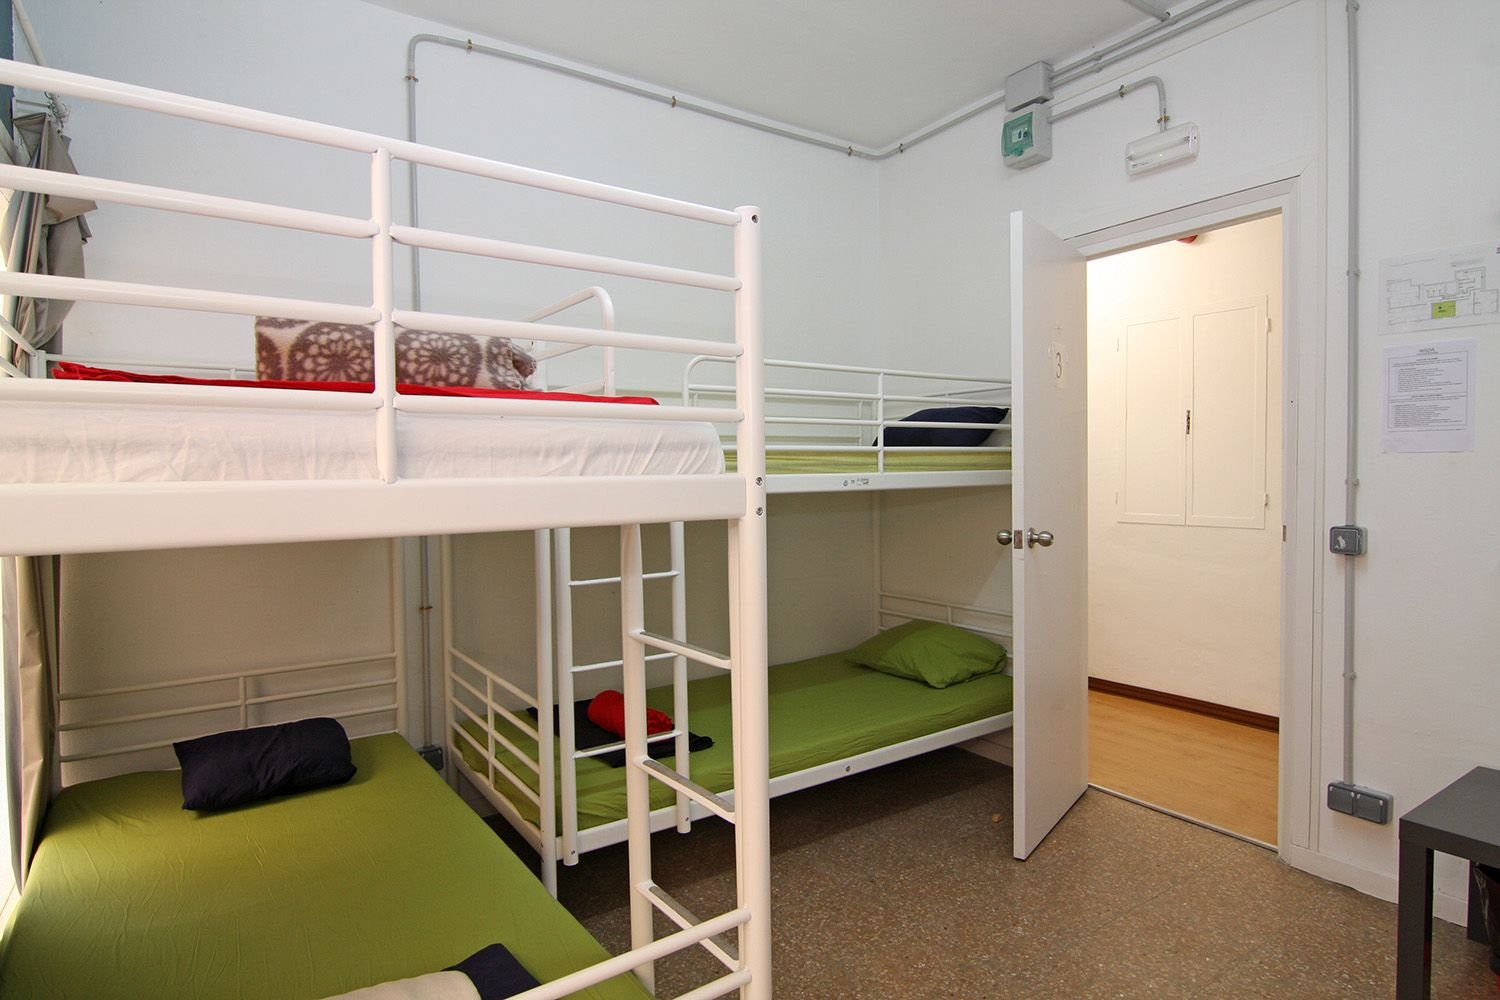 6 Bed Room Hostel Graciacityhostel Barcelona City Home